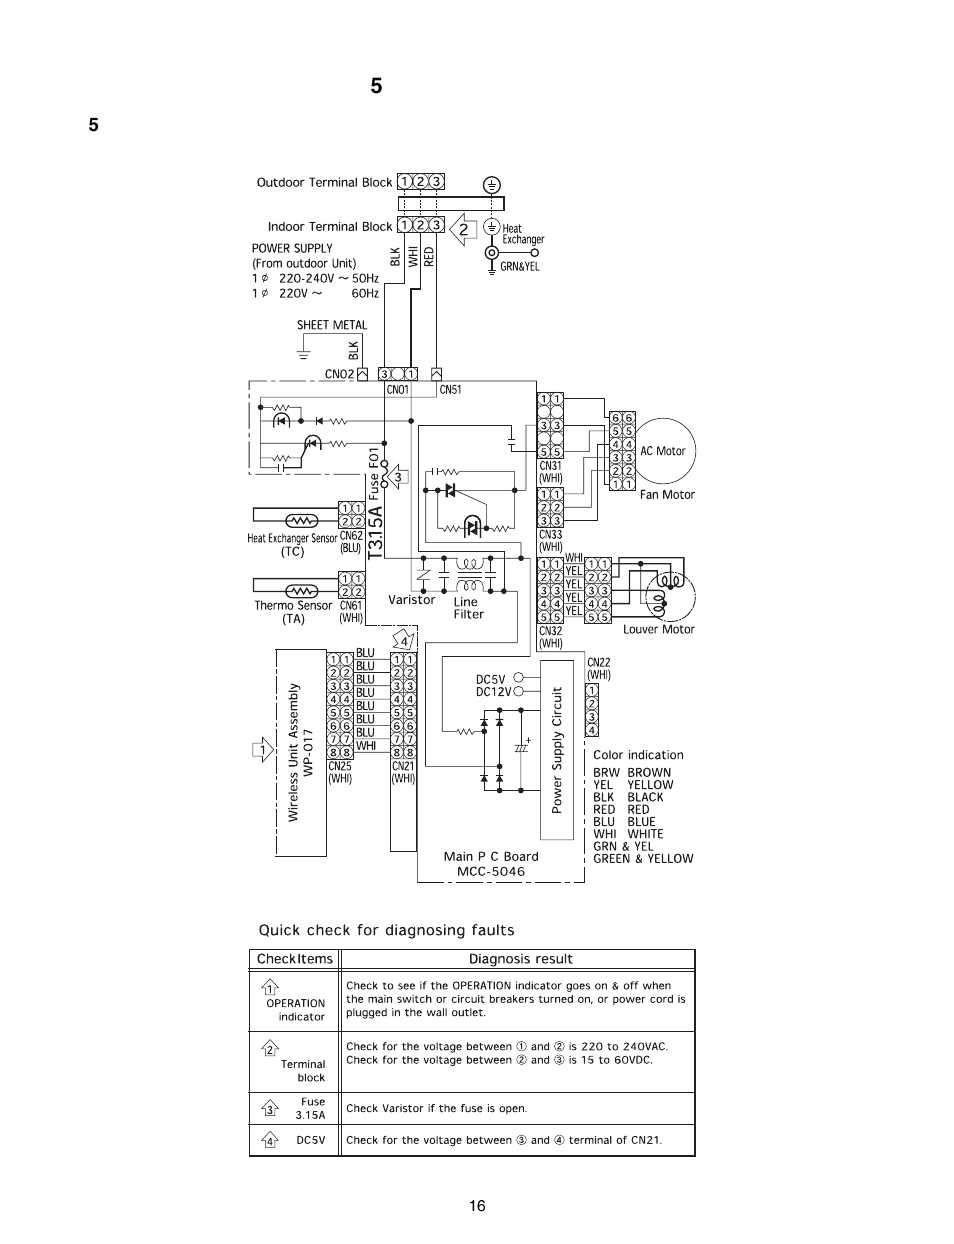 Toshiba Ac Motor Wiring Diagram Page 5 And Schematics Soft Start Diagrams Ras 10skv A User Manual 17 94 Also For E 10sav